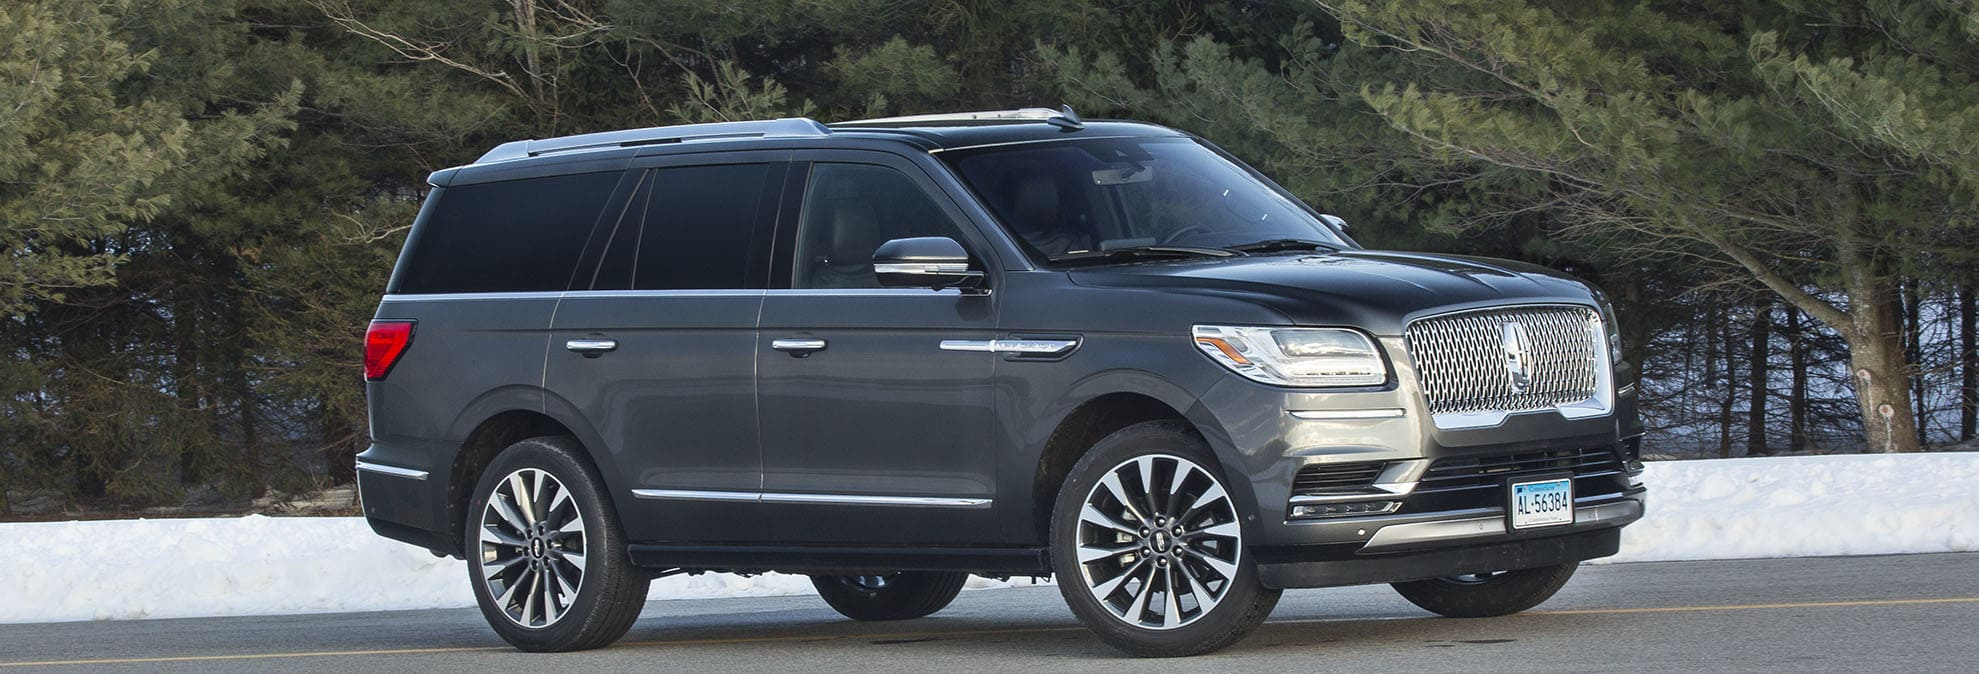 https://article.images.consumerreports.org/prod/content/dam/CRO%20Images%202018/Cars/January/CR-Cars-Hero-2018-Lincoln-Navigator-1-18